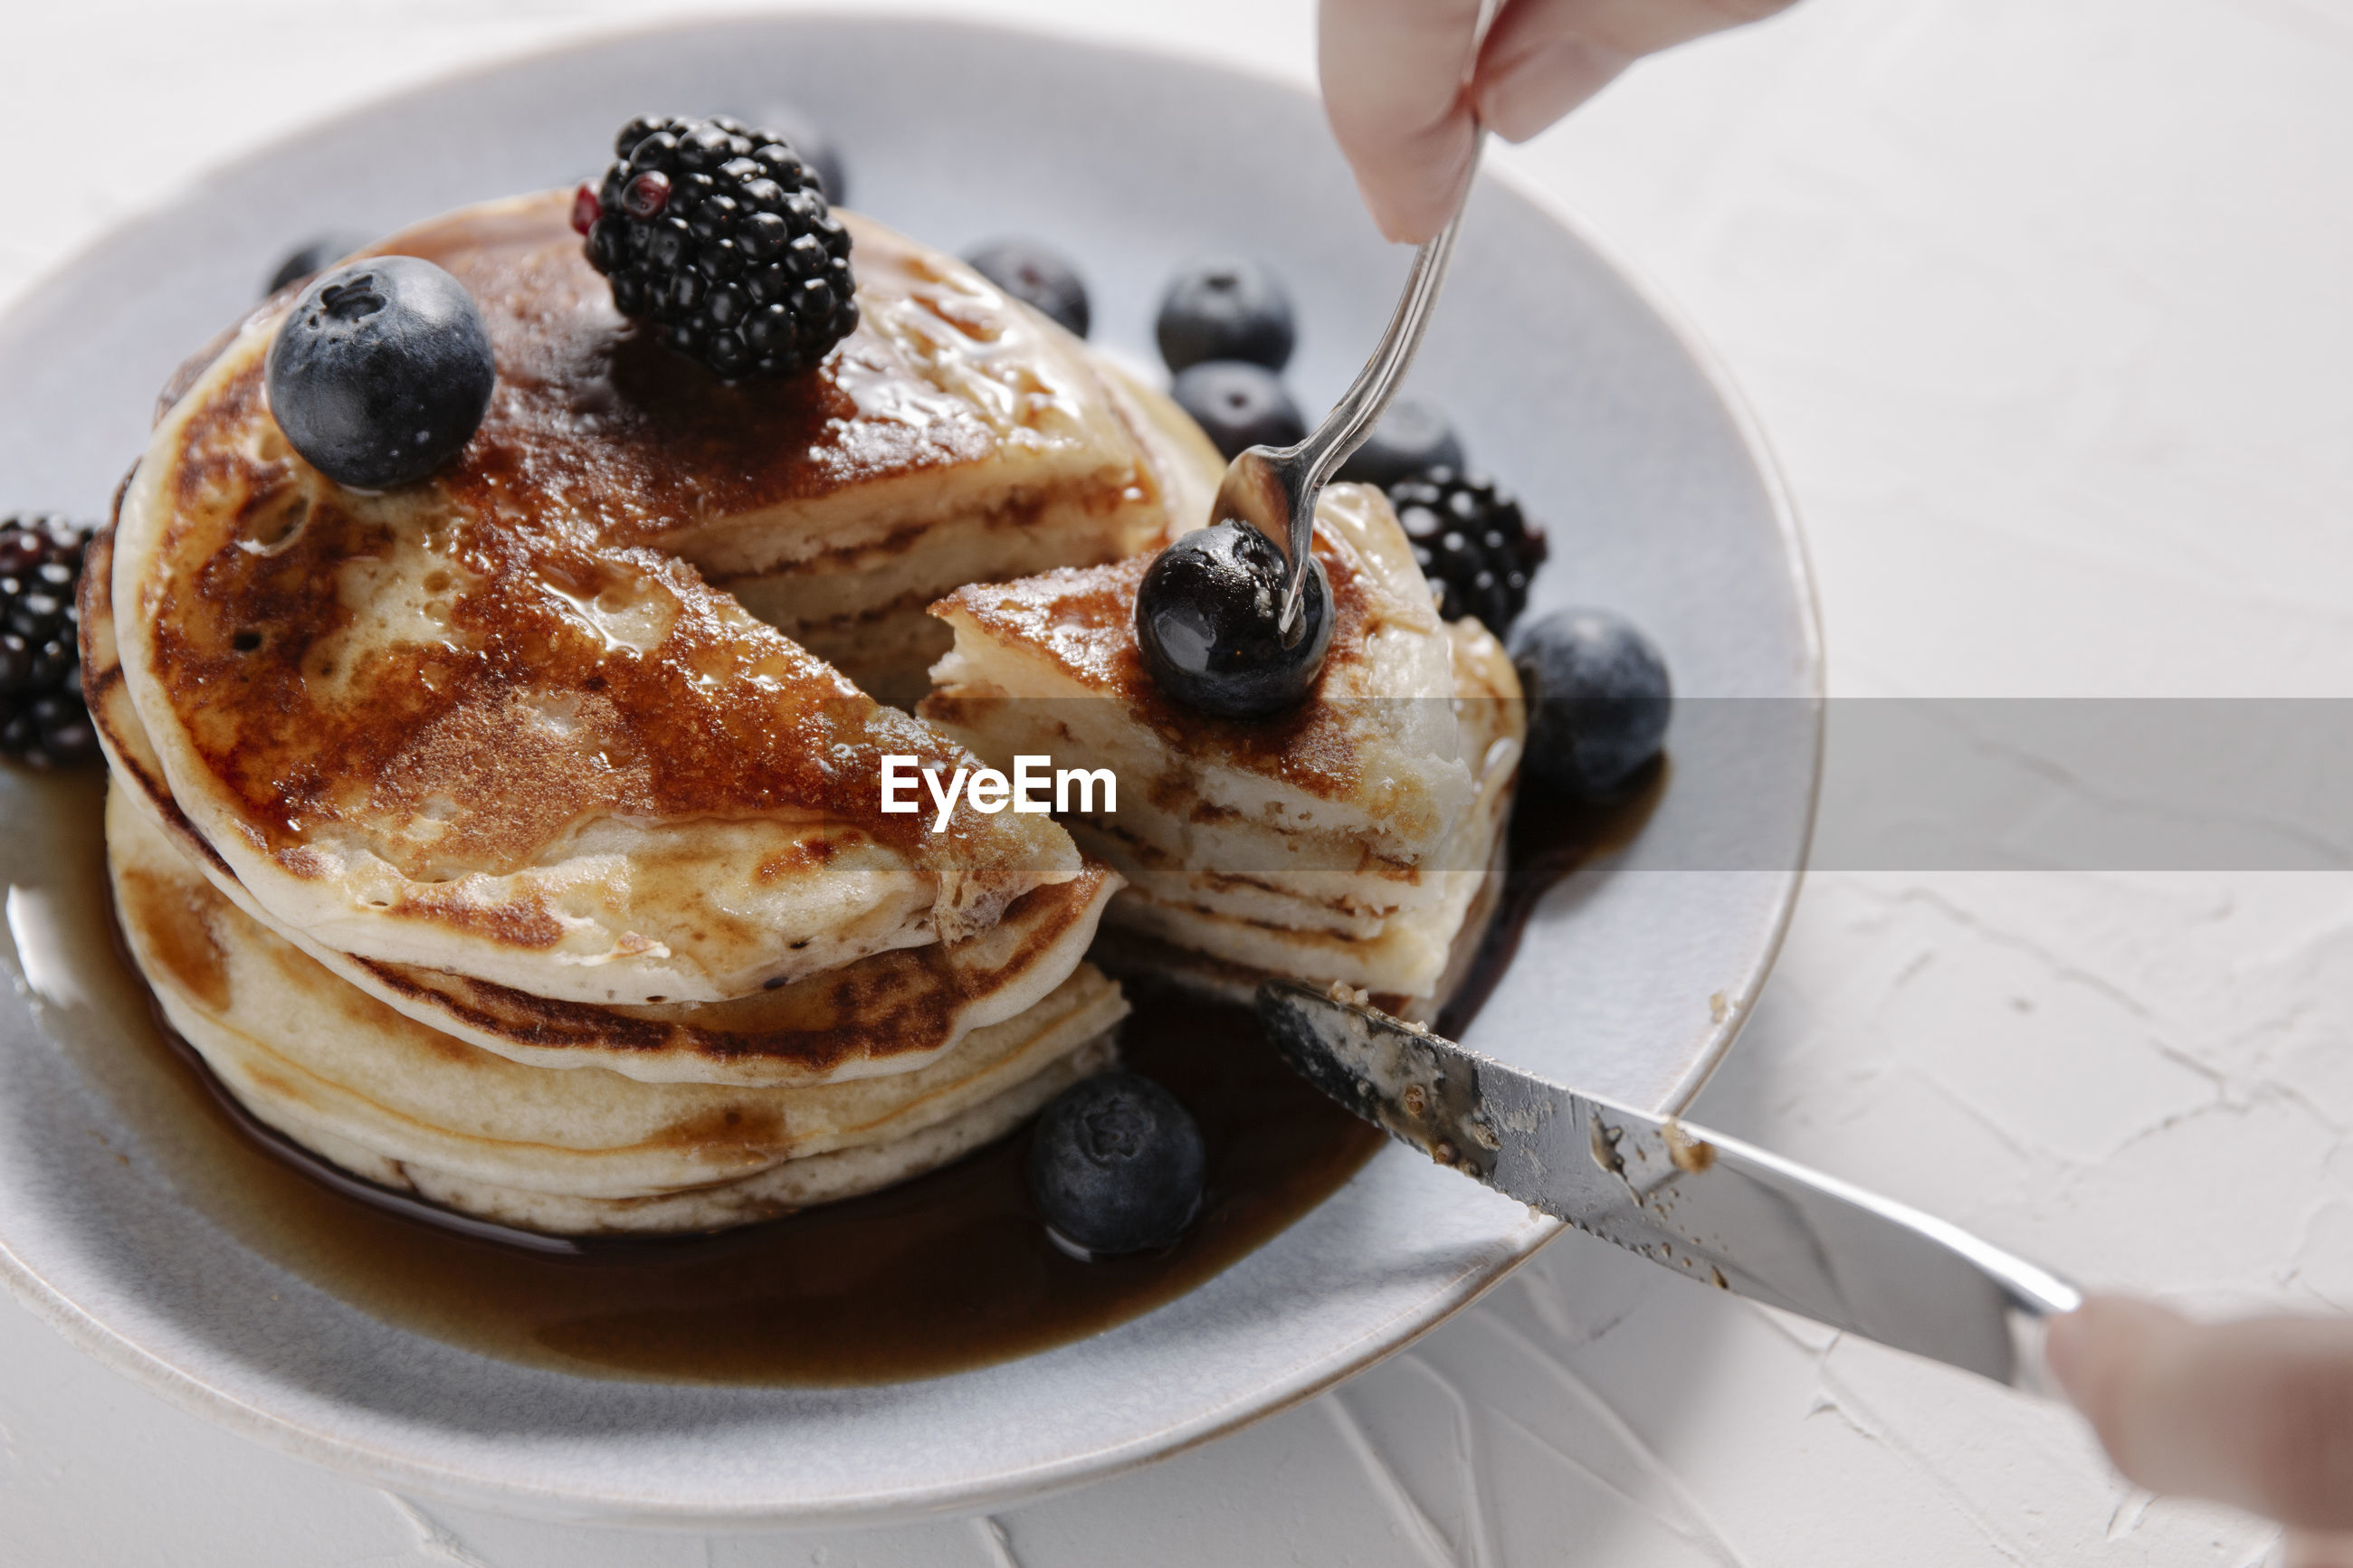 HIGH ANGLE VIEW OF BREAKFAST IN GLASS